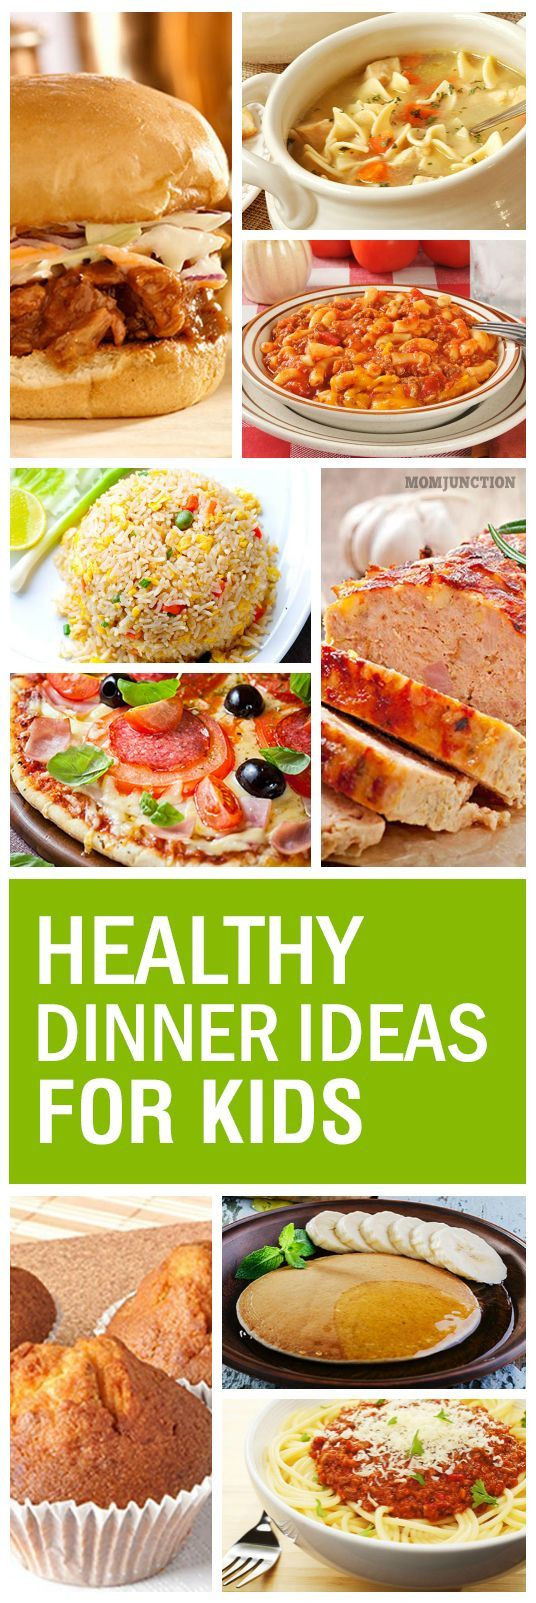 Easy Yummy Healthy Dinners  15 Quick And Yummy Dinner Recipes For Kids